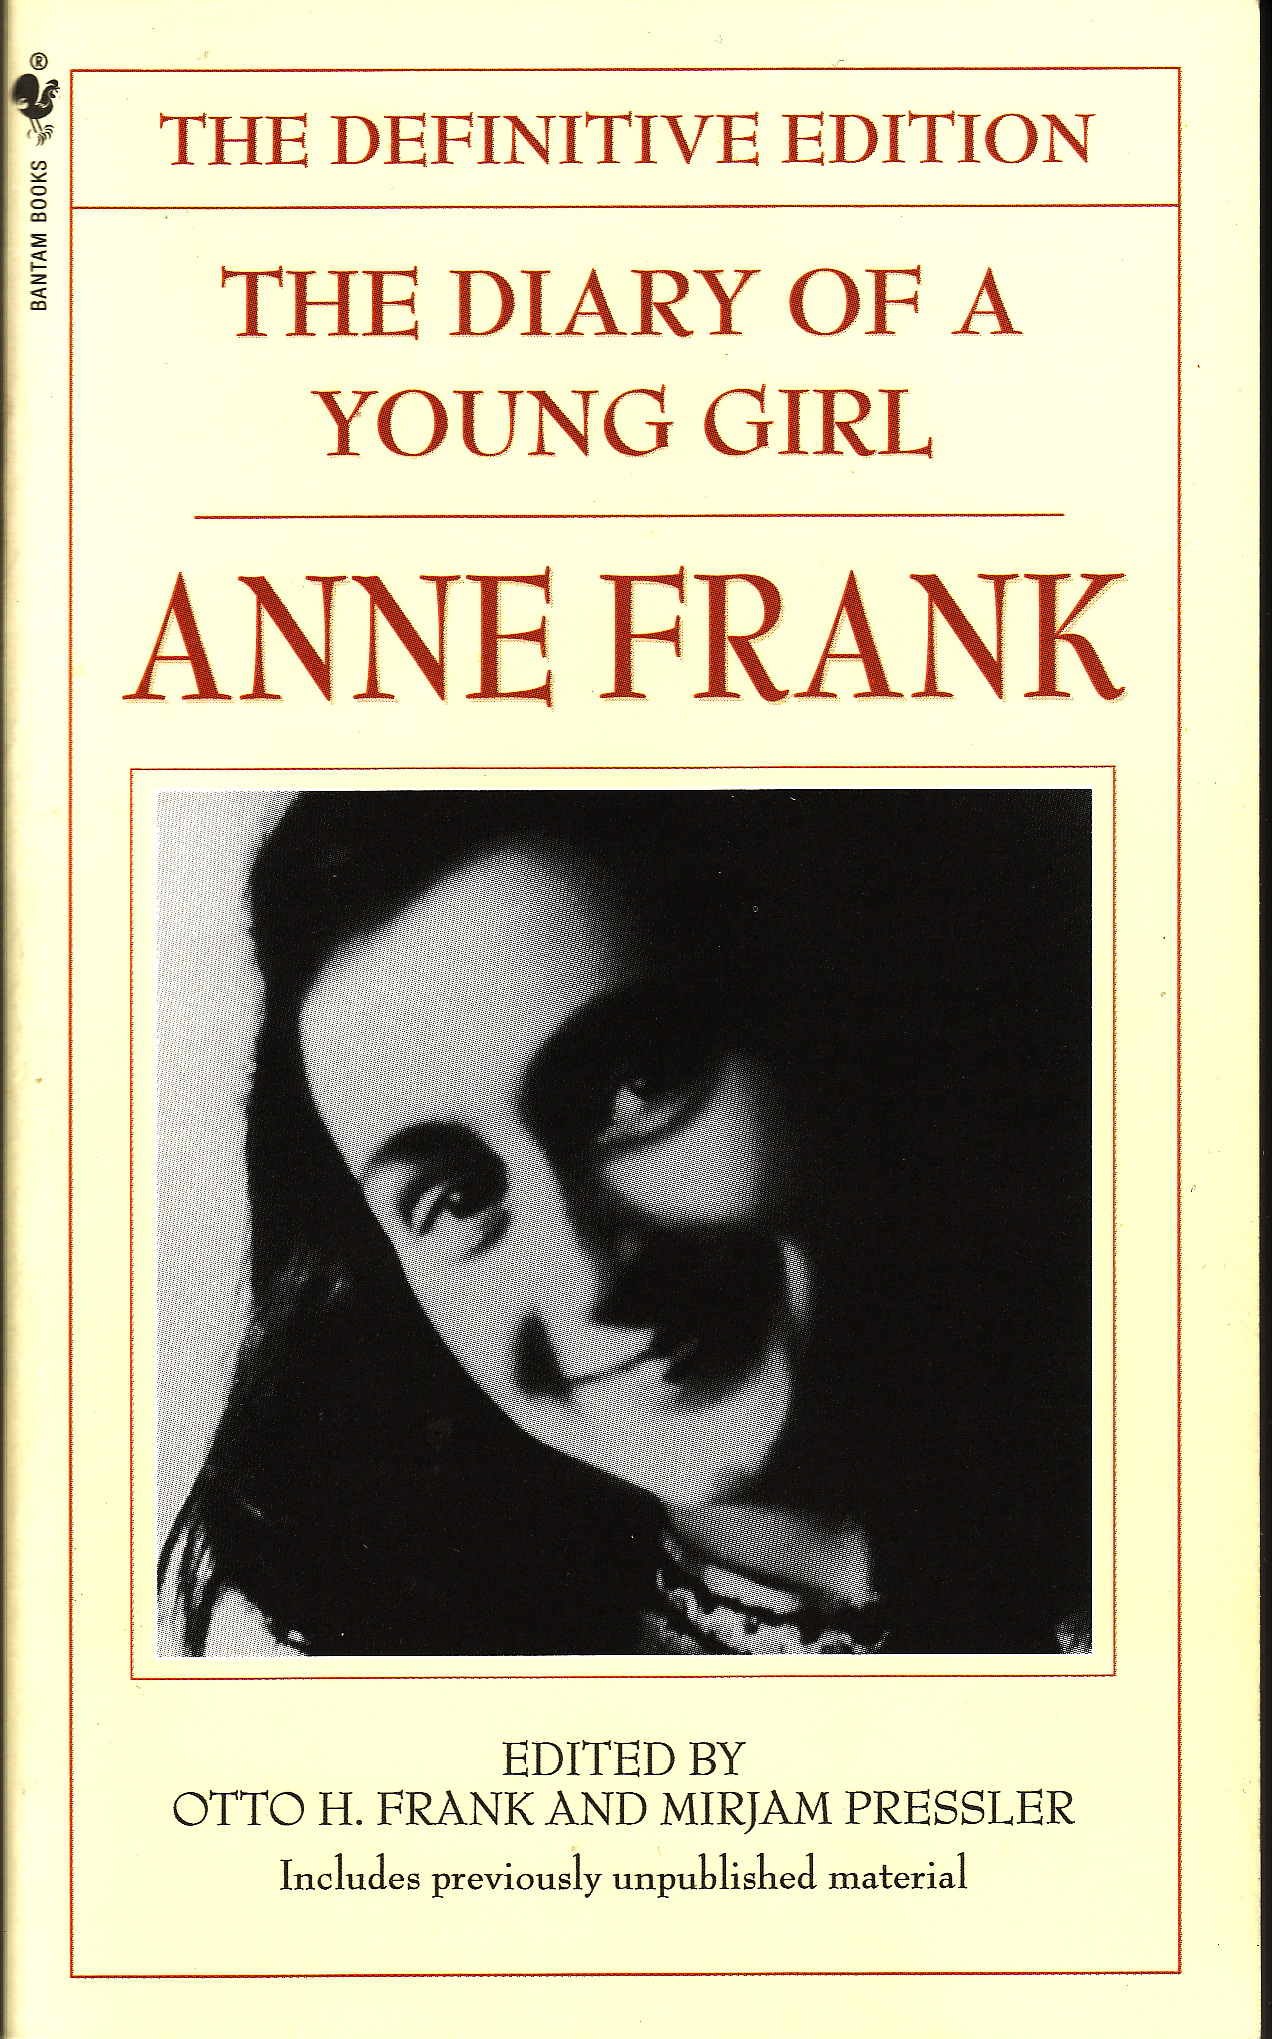 the diary of anne frank book The diary of anne frank books the hiding place with the franks and the diary of anne frank, the theatrical adaptation of anne's.